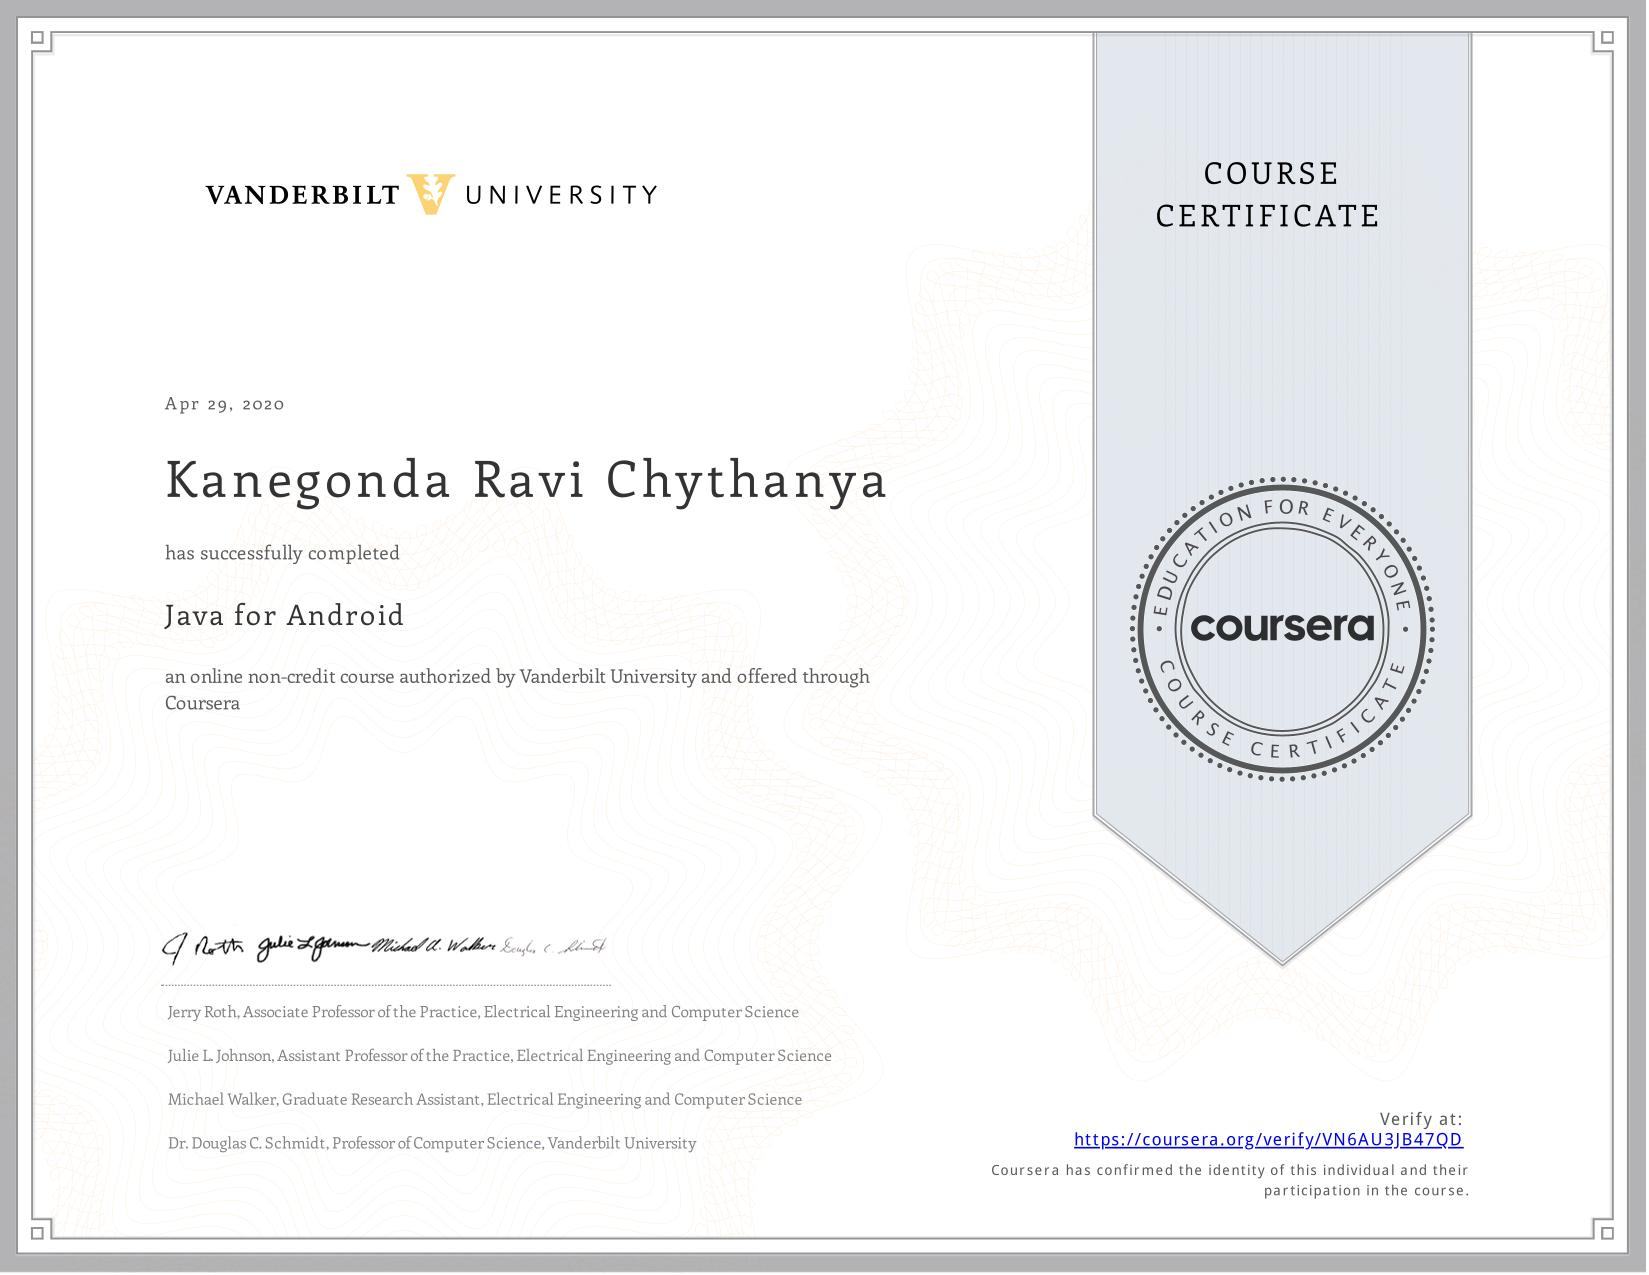 View certificate for Kanegonda Ravi Chythanya, Java for Android, an online non-credit course authorized by Vanderbilt University and offered through Coursera